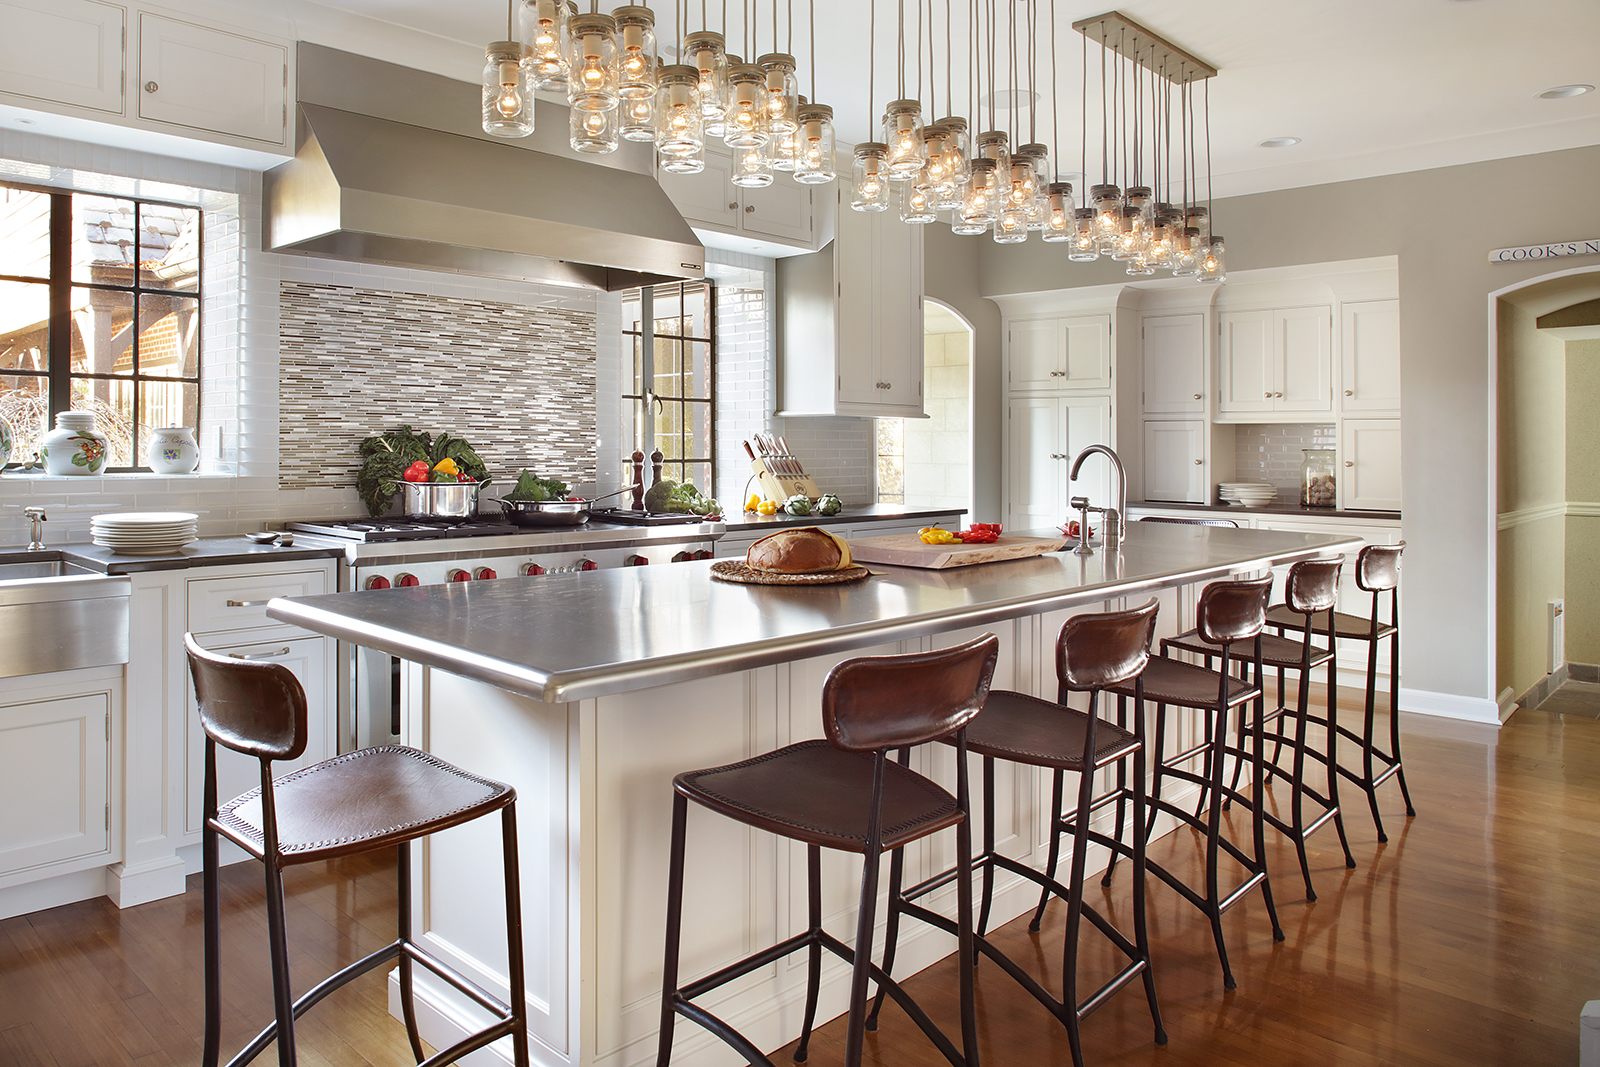 Transitional Kitchen Design Transitional Kitchen  Design Your Lifestyle.